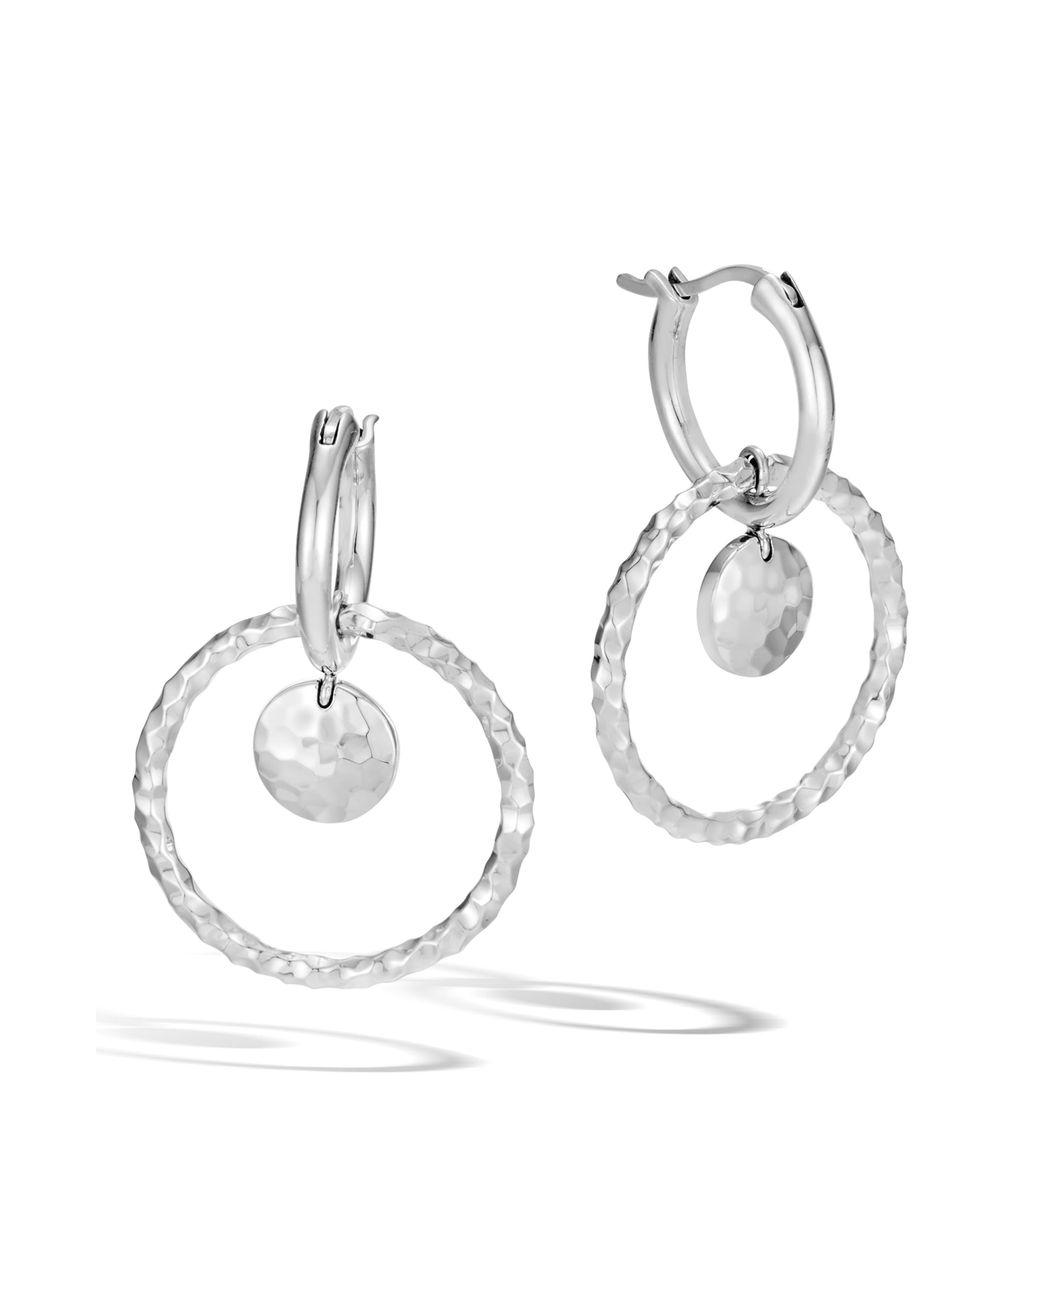 Diamond Accent Round Hoop Earrings 14k White Gold Over Sterling Silver $295